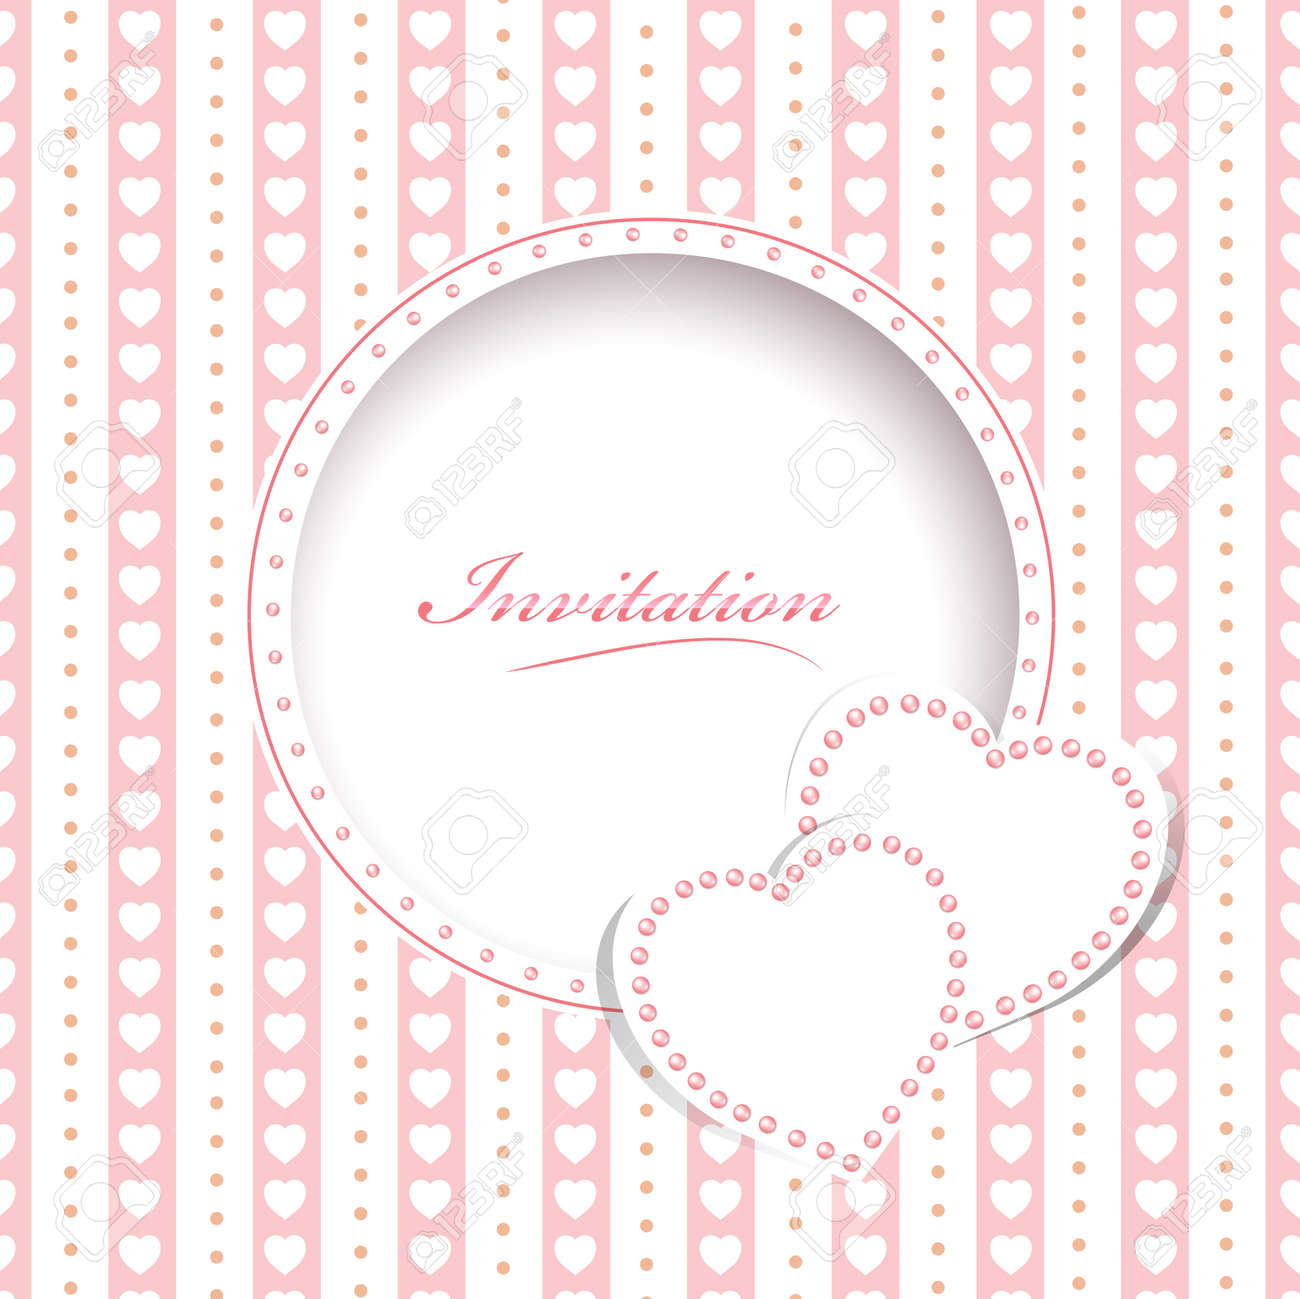 Wedding Greetings Or Invitation Card With Hearts Royalty Free